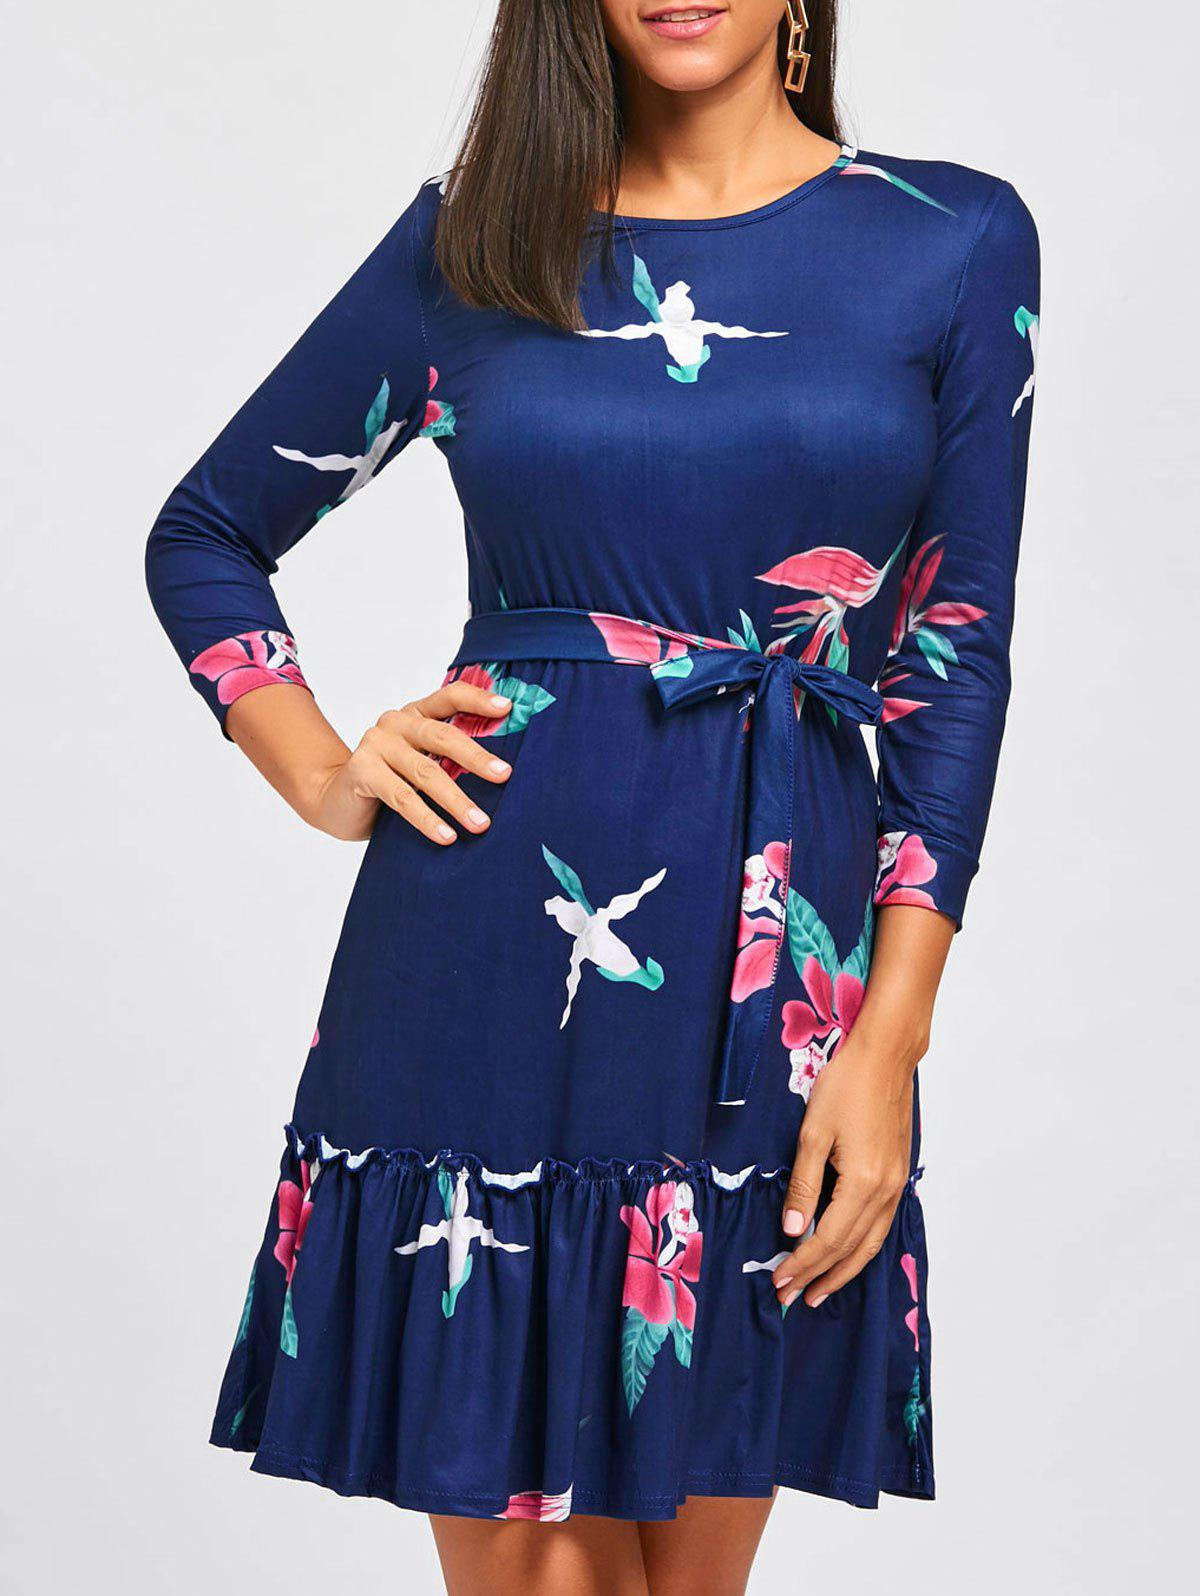 Casual Flounce Floral Dress - DEEP BLUE S